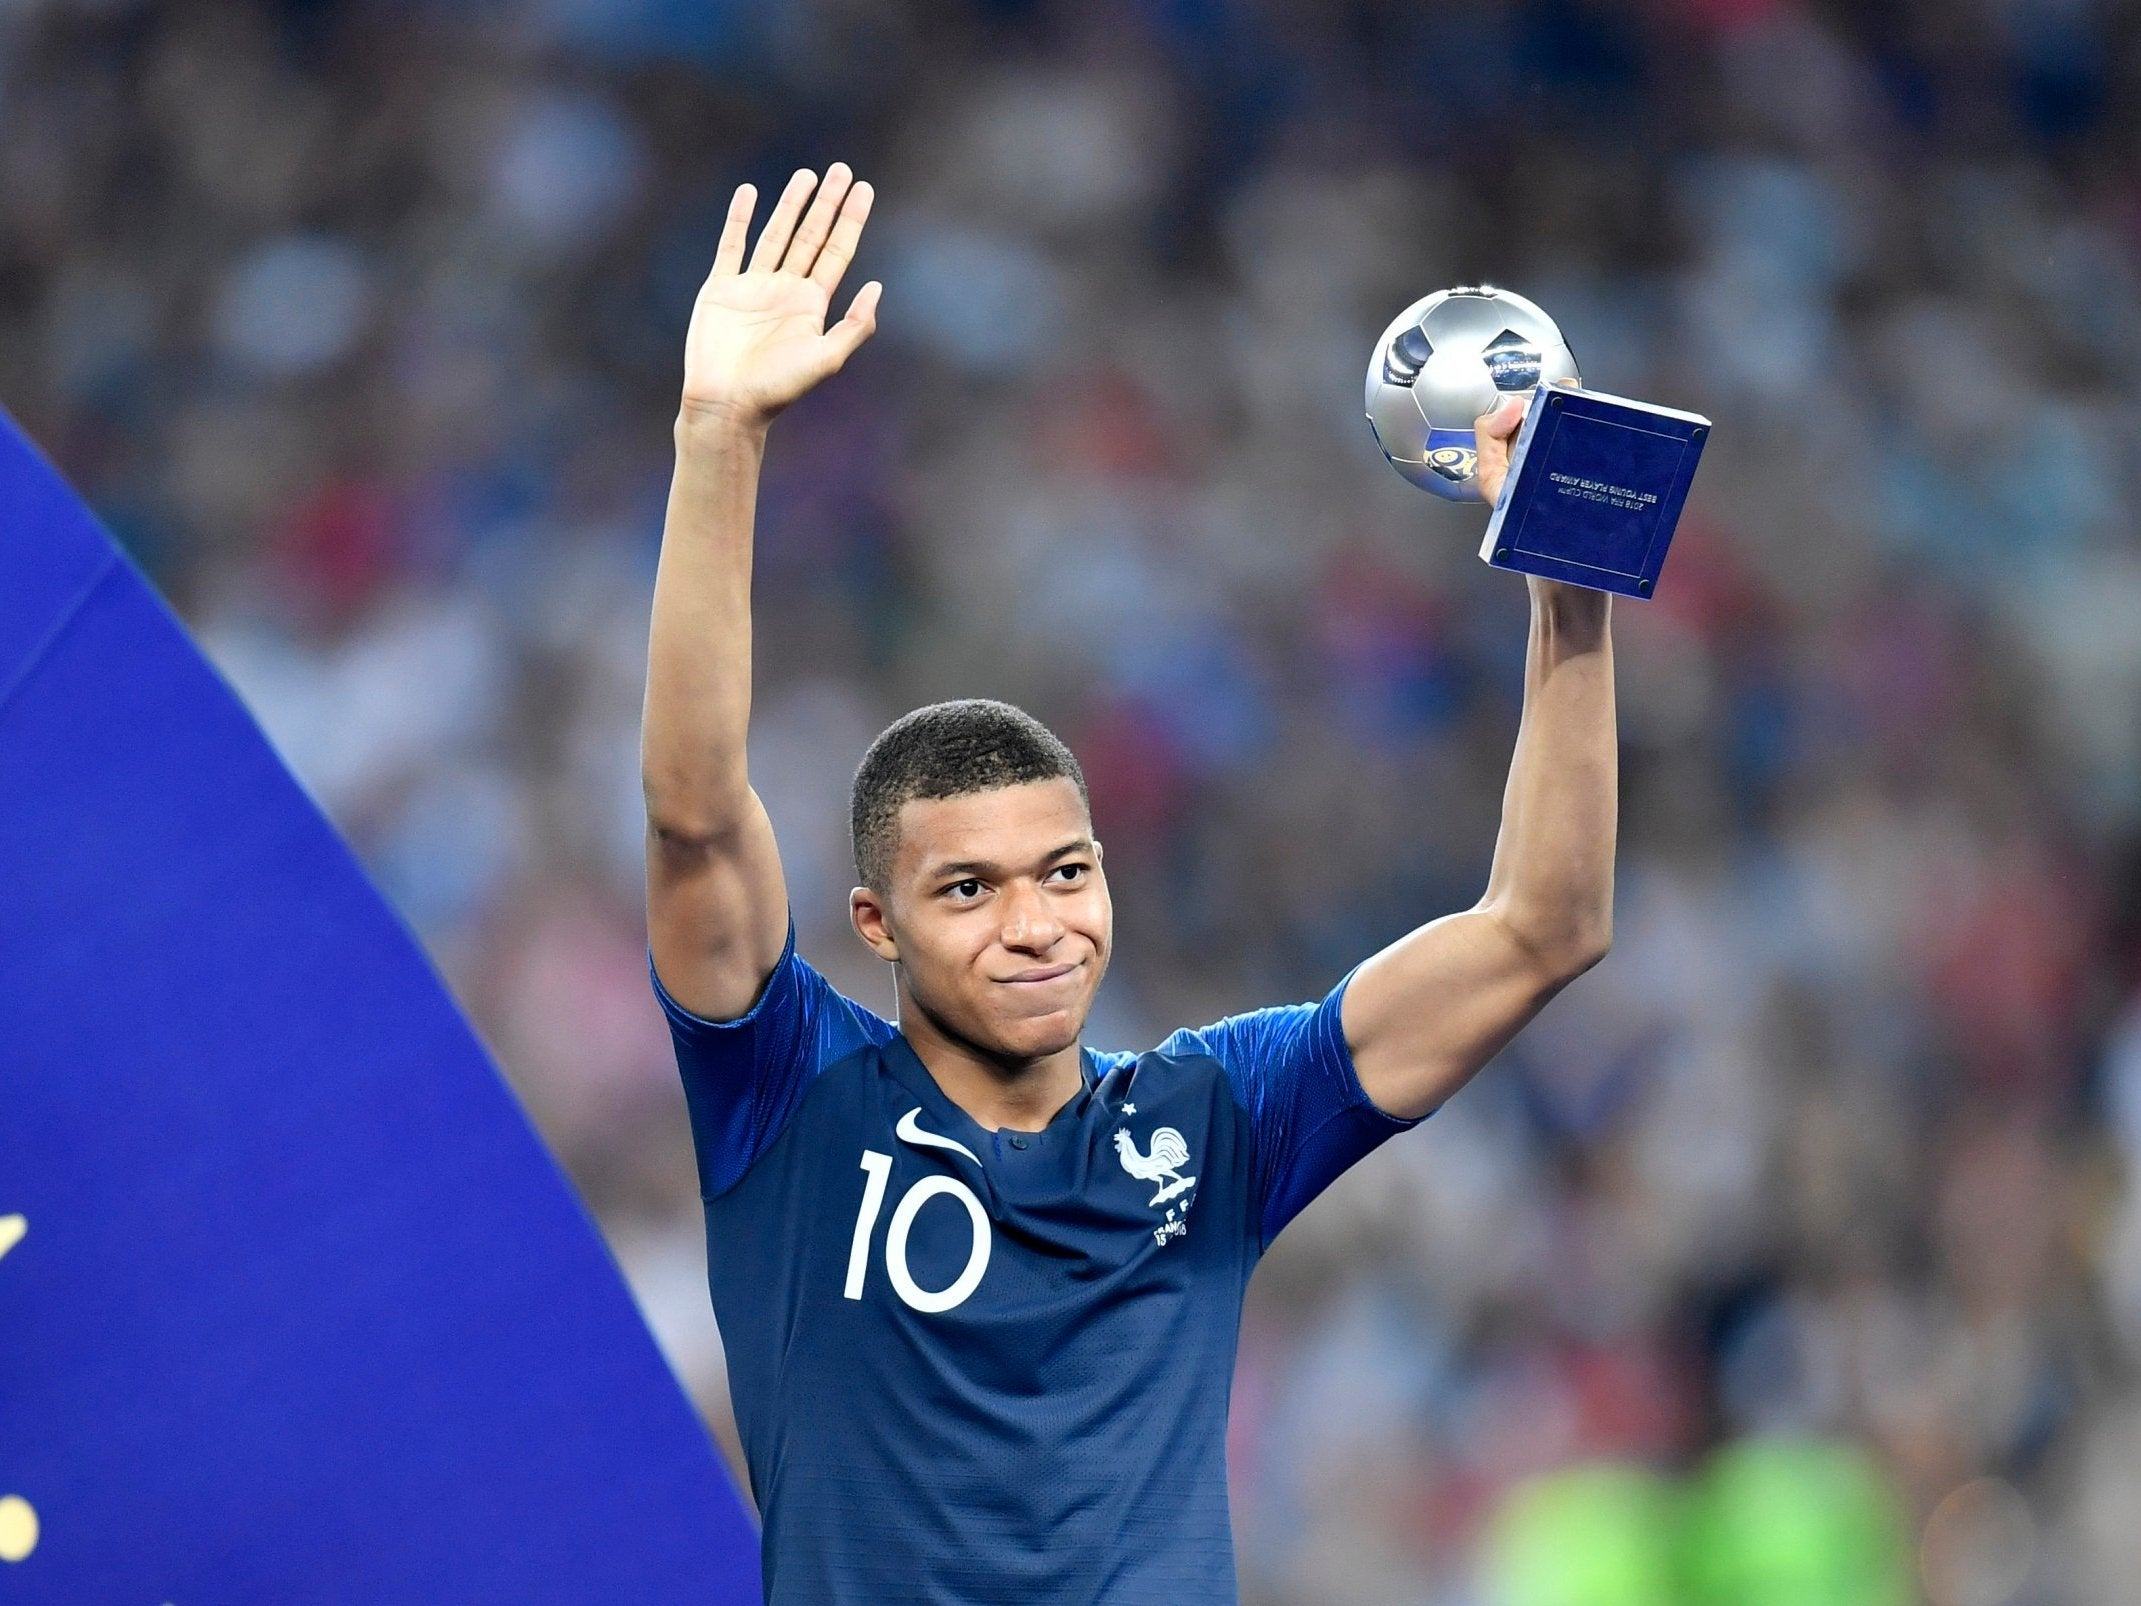 Image result for mbappe world cup 2018 award